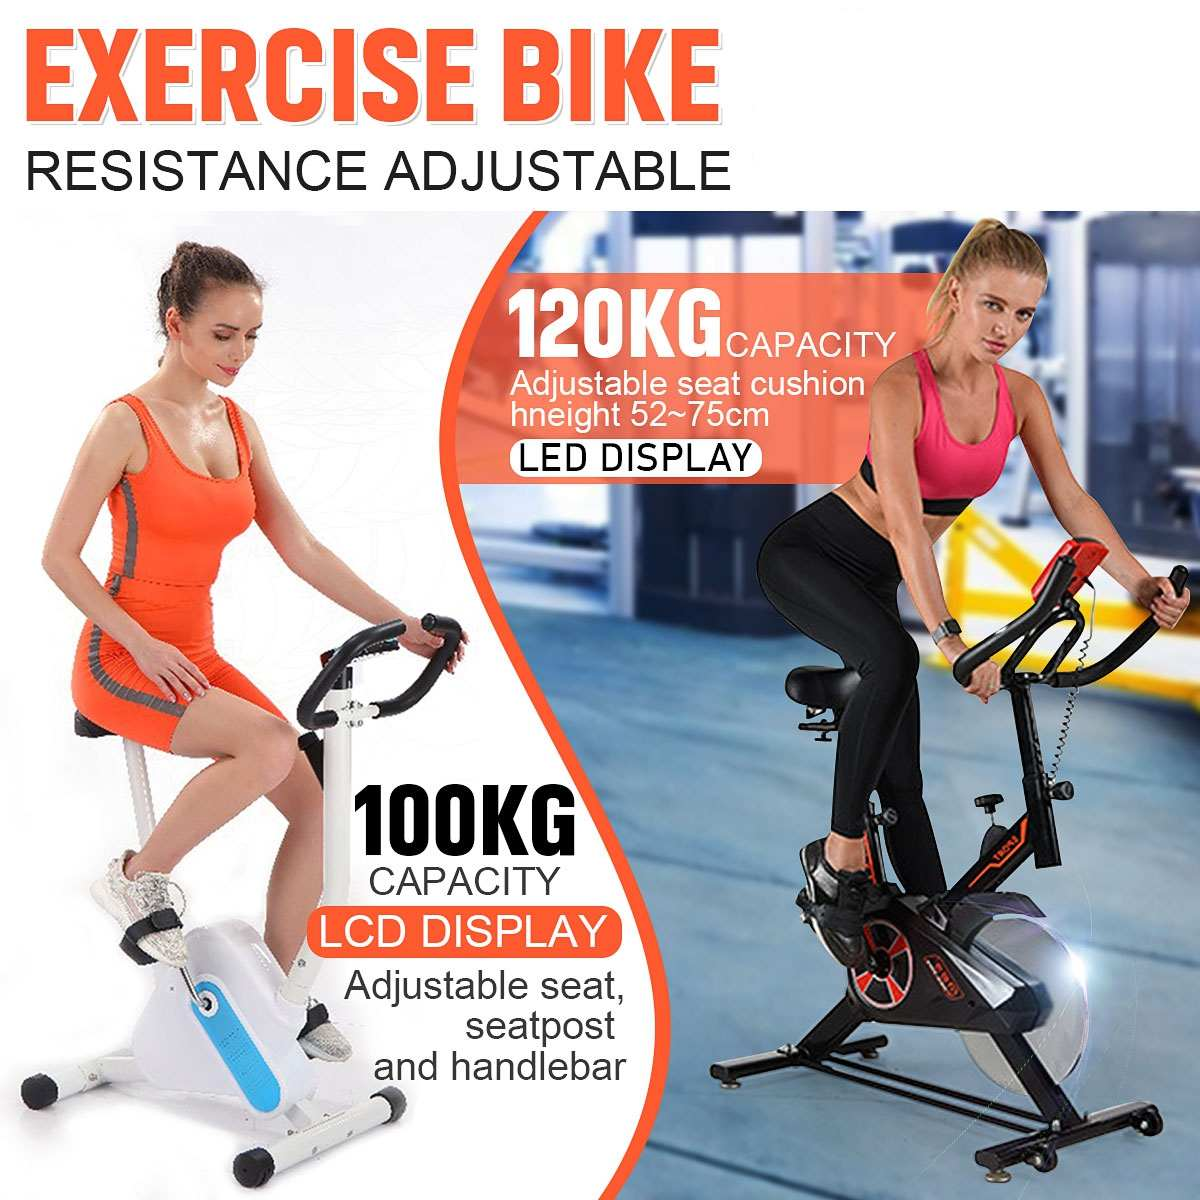 Permalink to 6 Gear Adjusable Home Indoor Cycling Bike Trainer LED Display Bicycle Fitness Exercise Cardio Tools Stationary Fitness Equipment